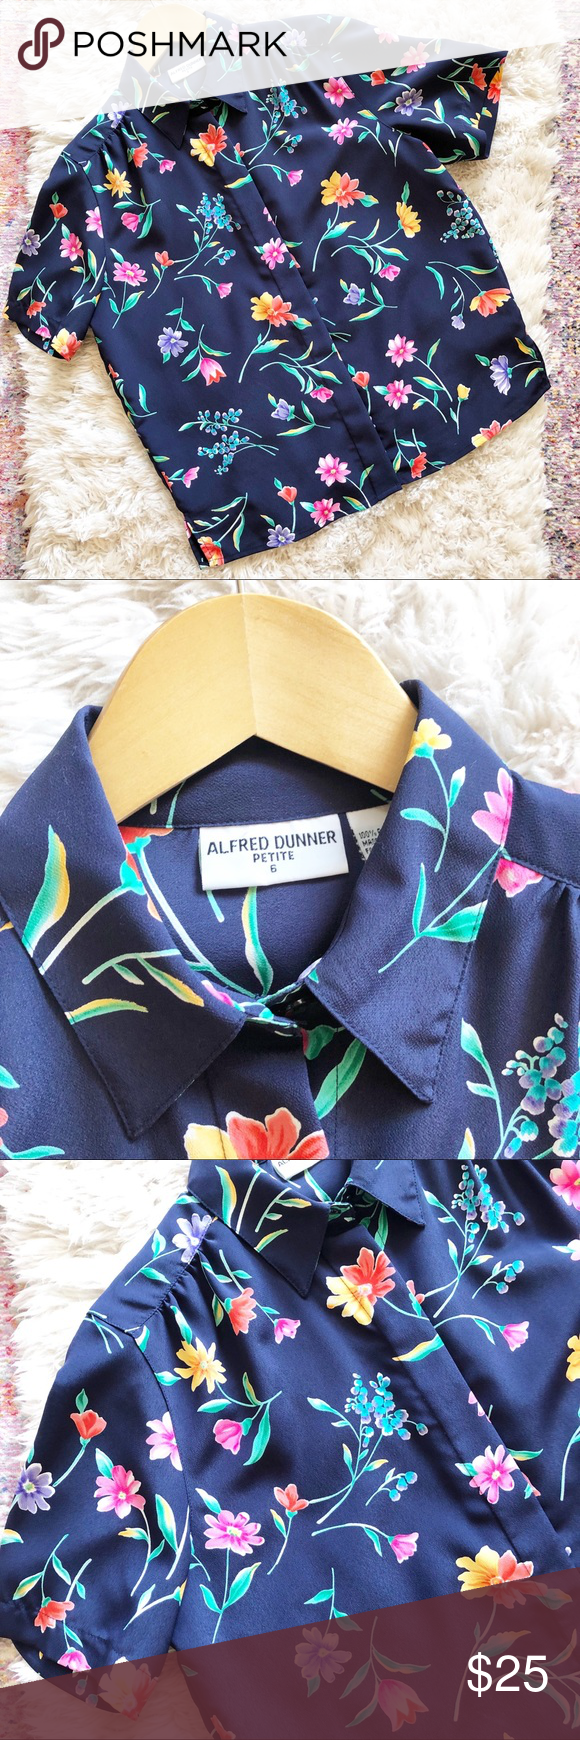 4868bd6f1f Vintage | Blue Floral Short Sleeve Button Up Shirt Navy blue floral blouse  from Alfred Dunner